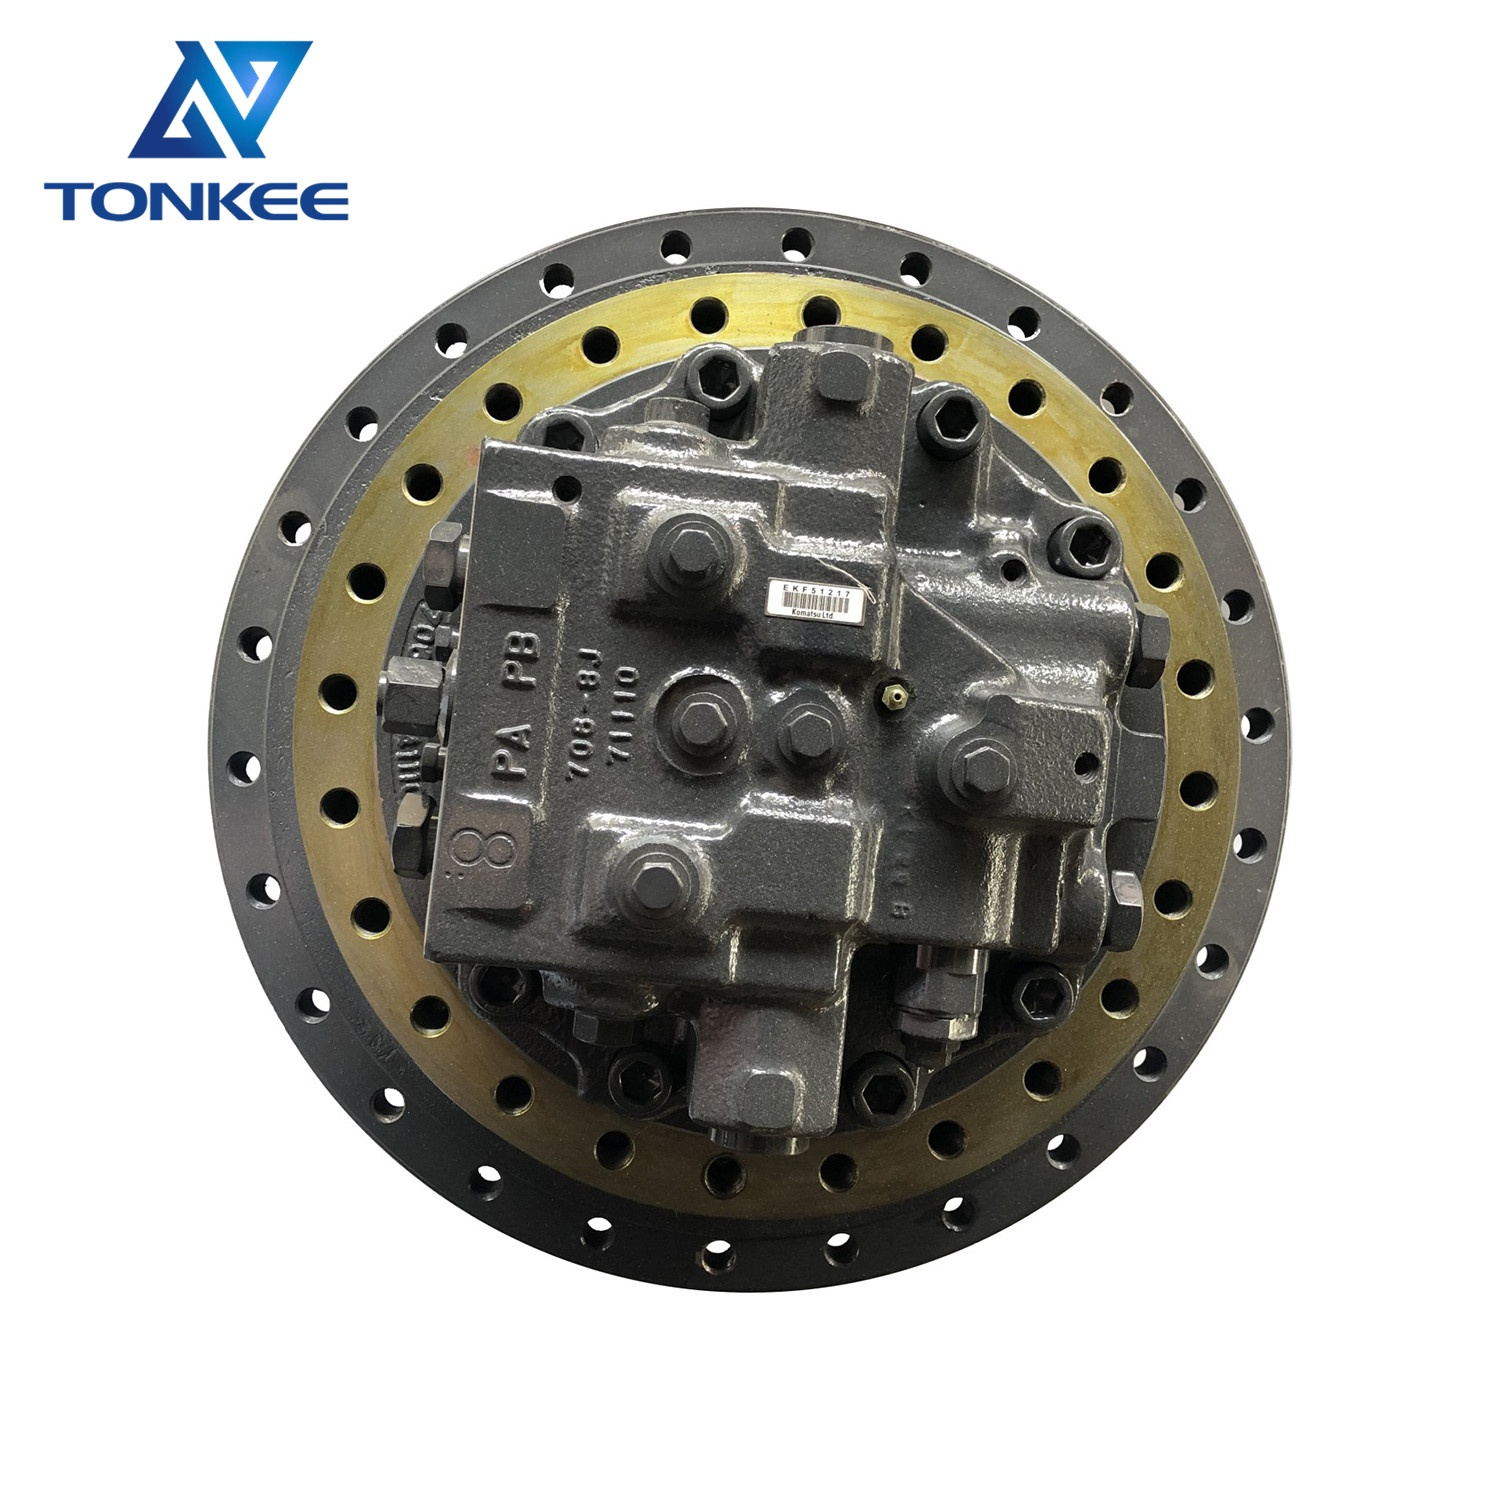 708-8J-71110 708-8J-41110 208-27-00312 208-27-00243 706-8J-01020 travel motor assy PC400-8 PC450-8 PC400-7  PC450-7 travel motor